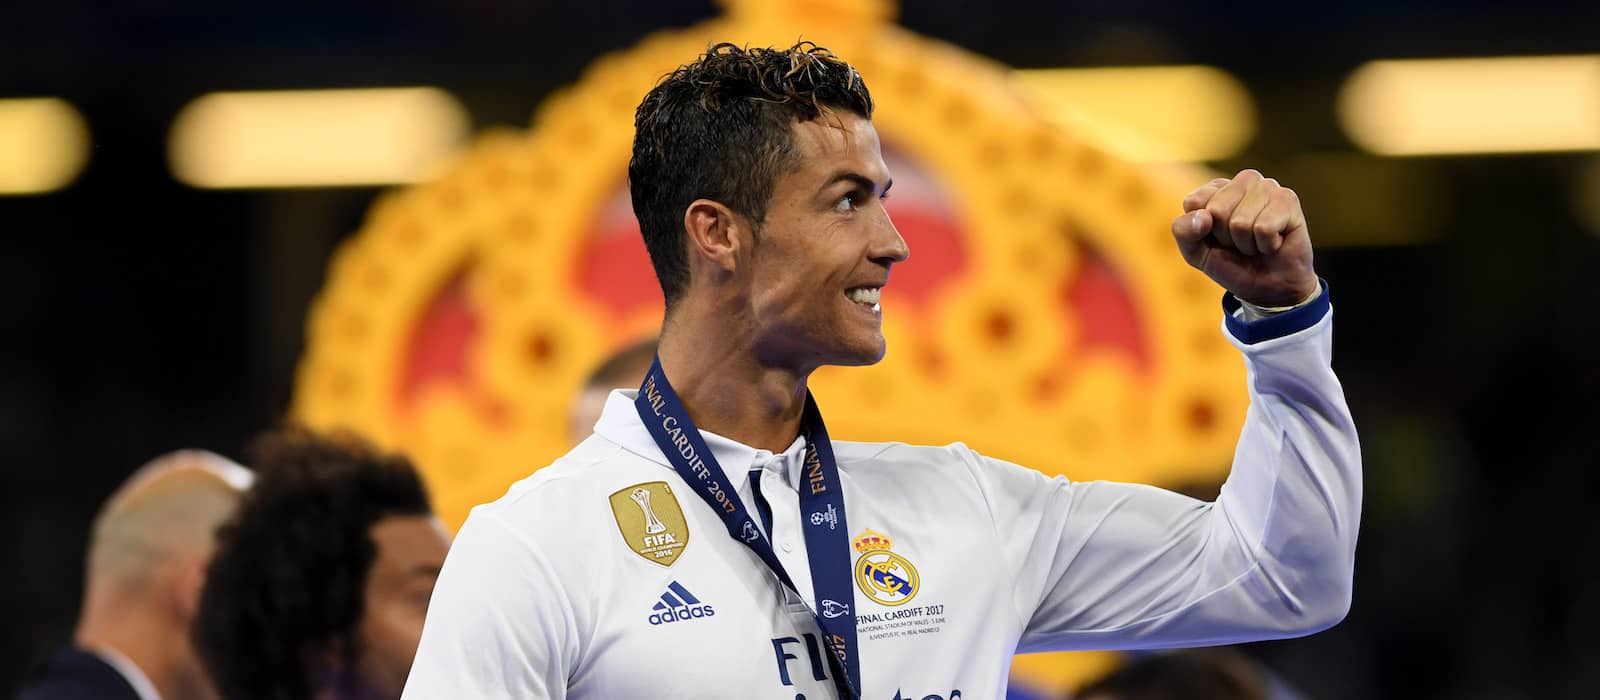 Bryan Robson admits he expected Ronaldo to end career at Manchester United